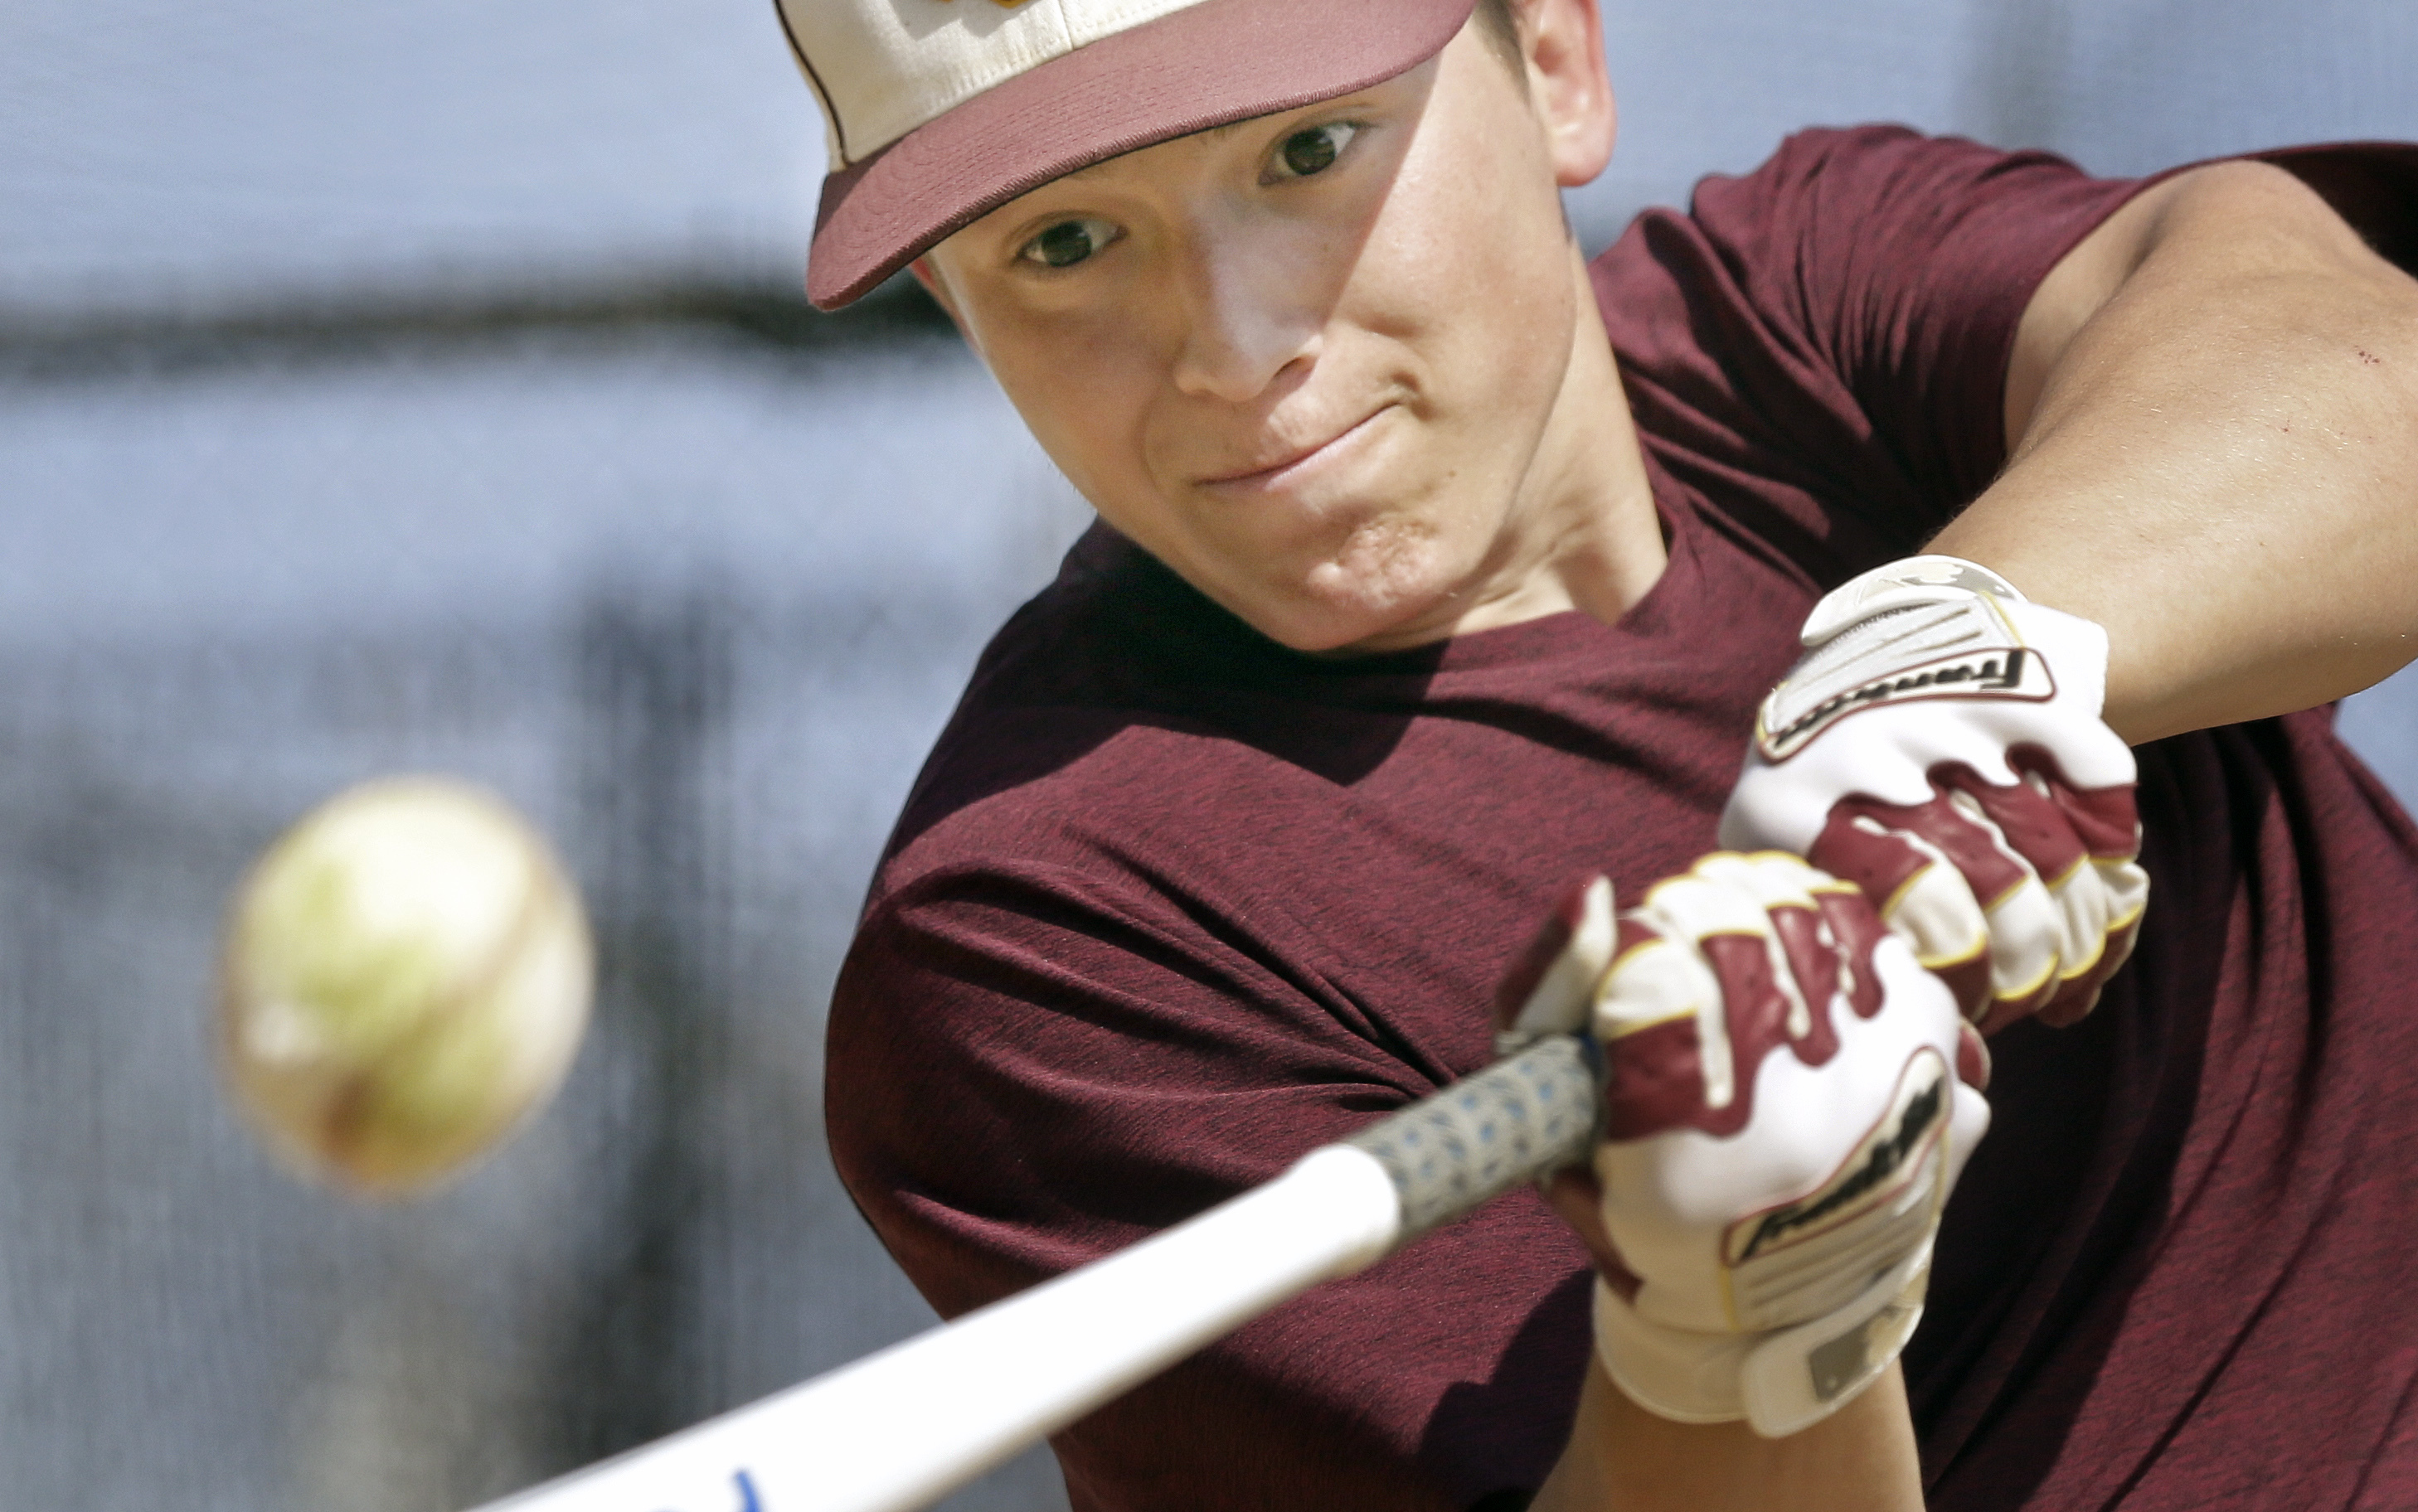 Gloucester Catholic´s Evan Giordano led the state with 30 extra-base hits and batted .543.